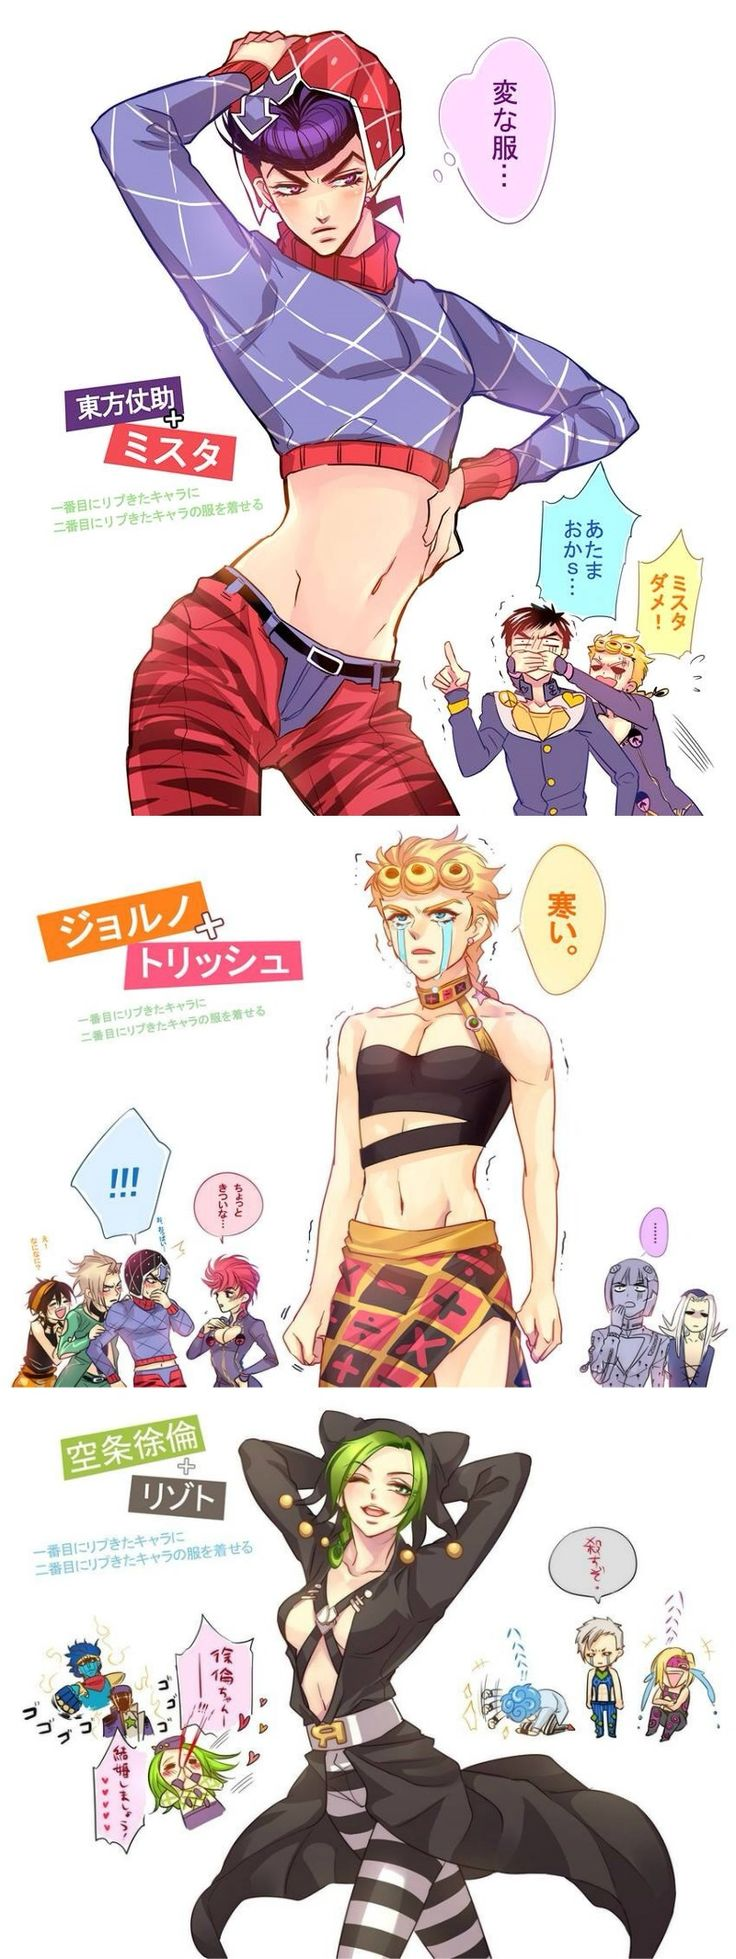 Giorno. . .XD Jolyne really pulls off the Risotto Look though. X3